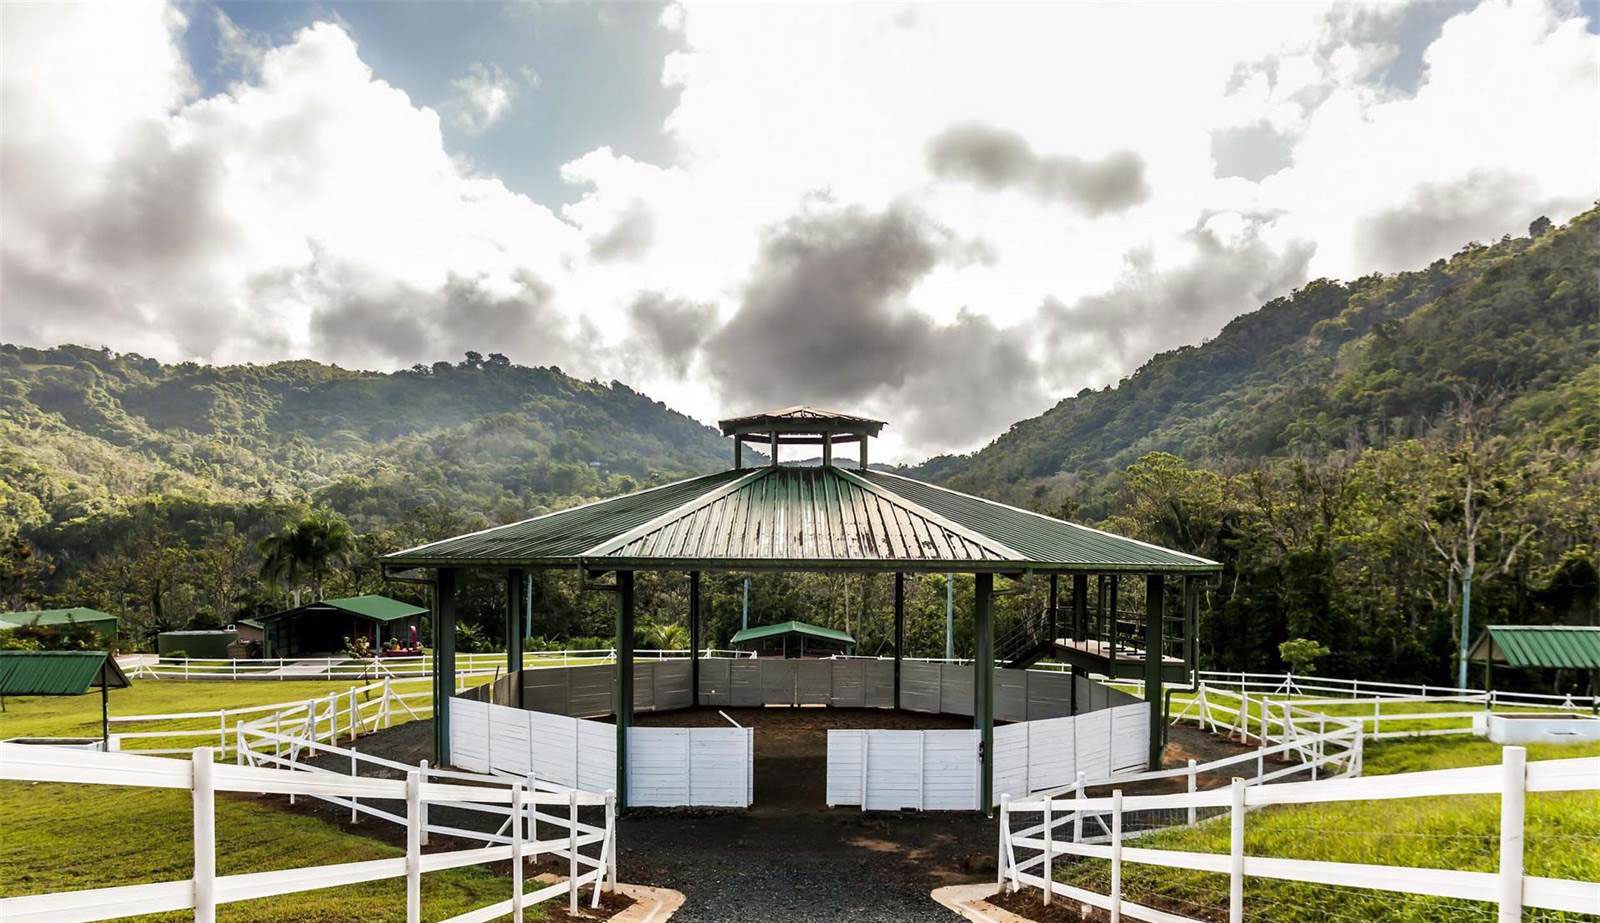 The ranch and recreational facilities are outstanding. An indoor equestrian arena, round pen, loose boxes, and stables for horses, donkeys, llamas, pigs, goats, and sheep, are among the delights.